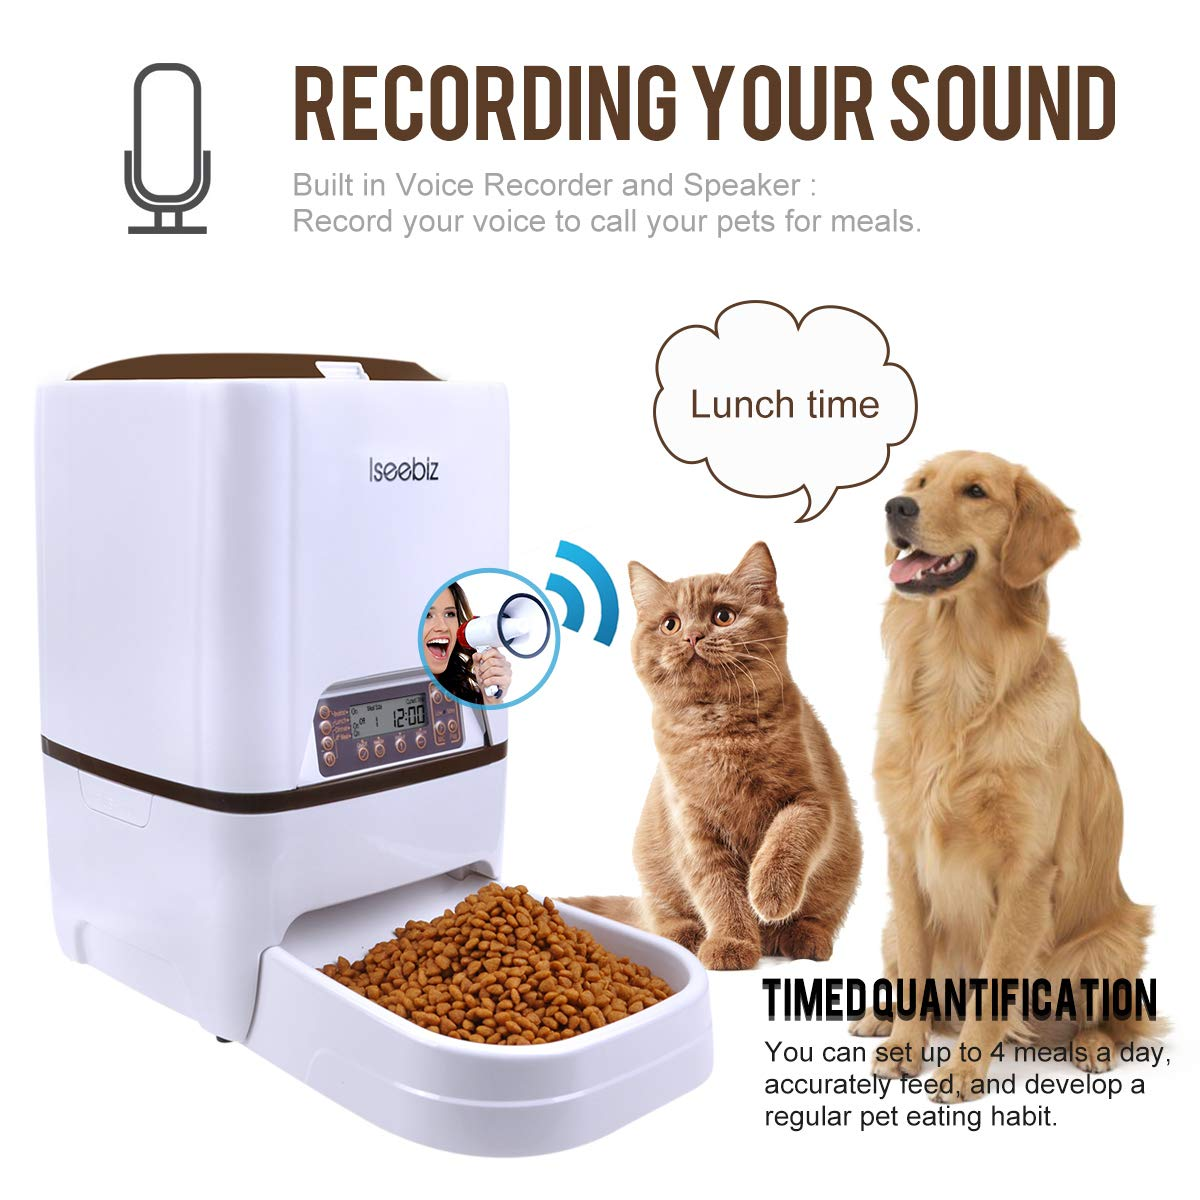 6l Automatic Convenient Pet Timing Feeder With Voice Recorder Speake Lcd Display Infrared Sensor Cat Dog Food Feeding Dispenser Home Appliance Parts